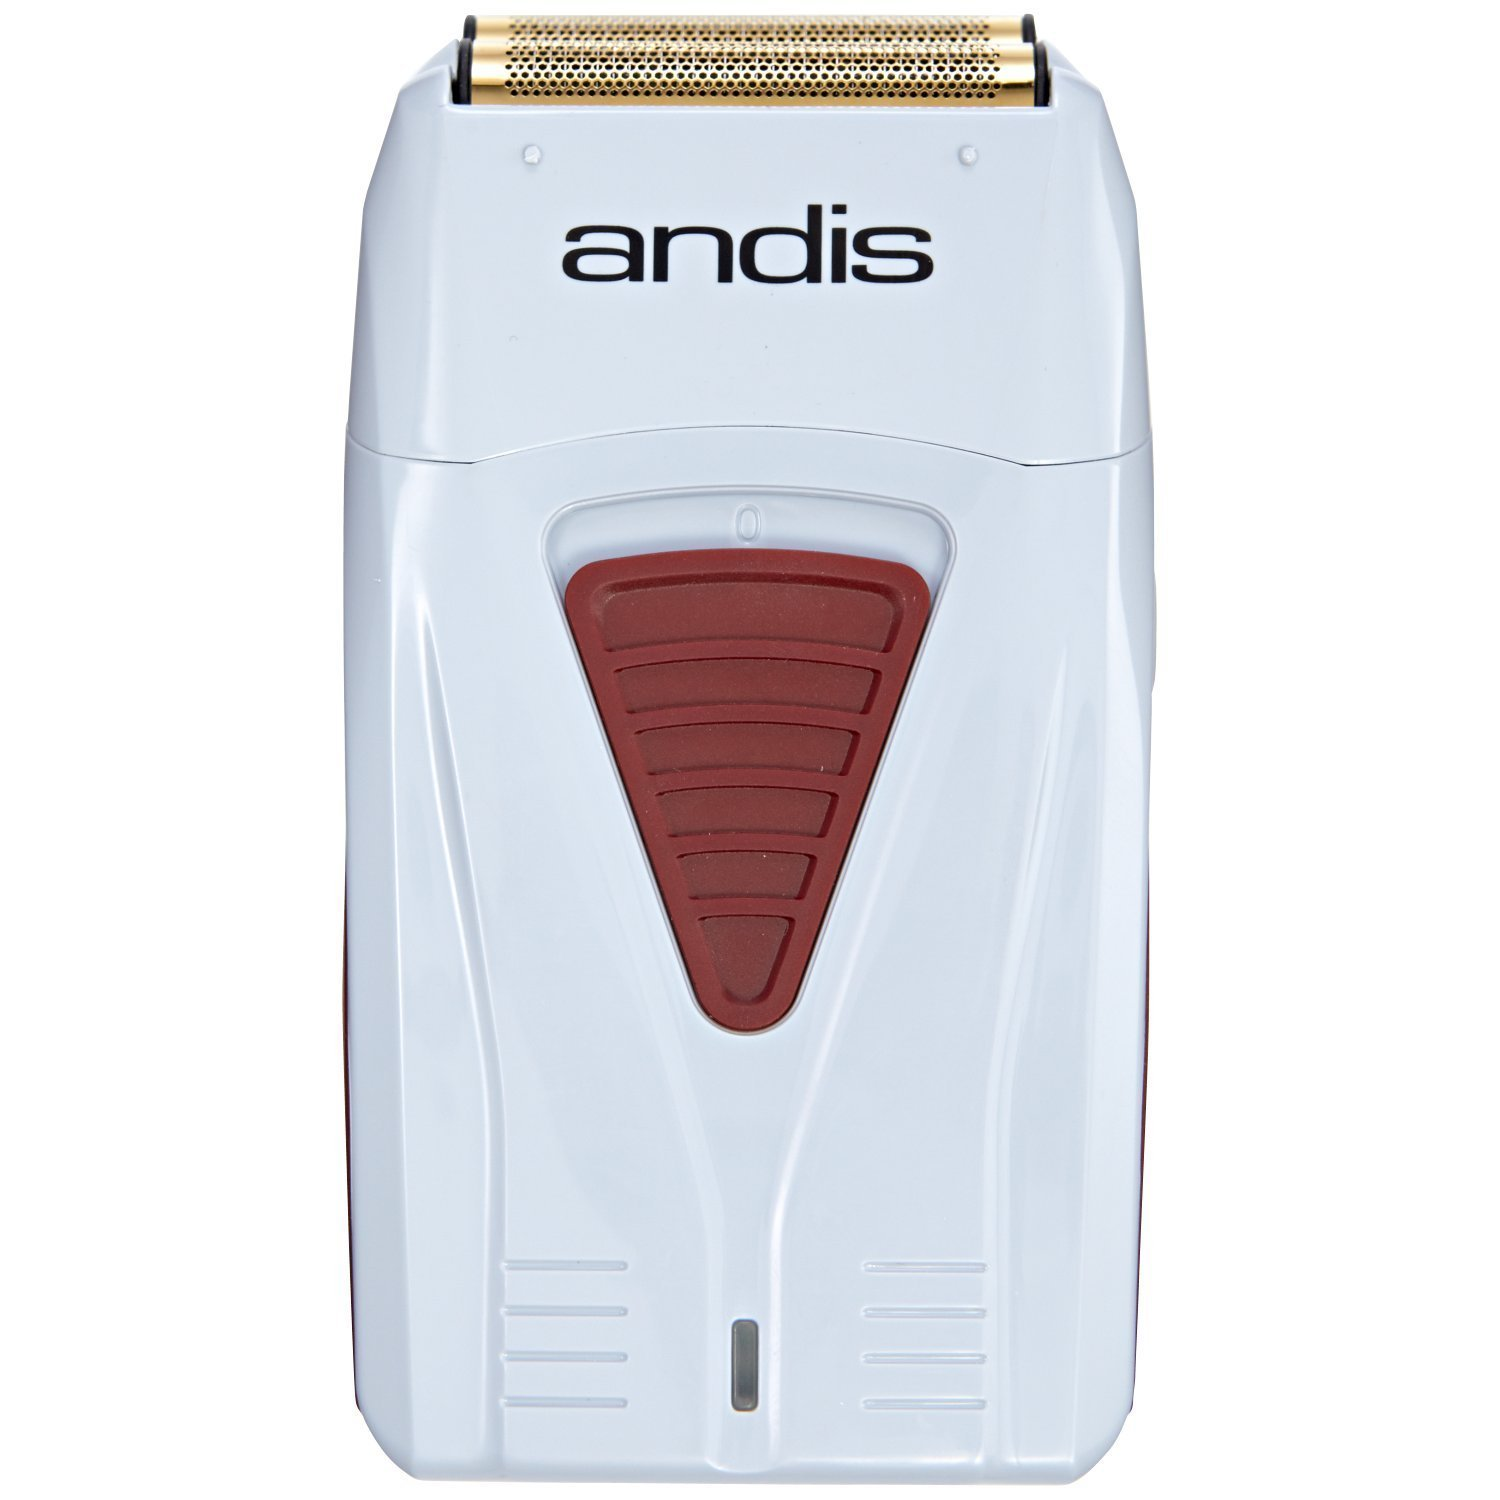 Andis LIGHTWEIGHT Cordless Mens Shaver with All NEW Hypoallergenic Gold Foil Technology, Bonus FREE Old Spice Body Spray Included